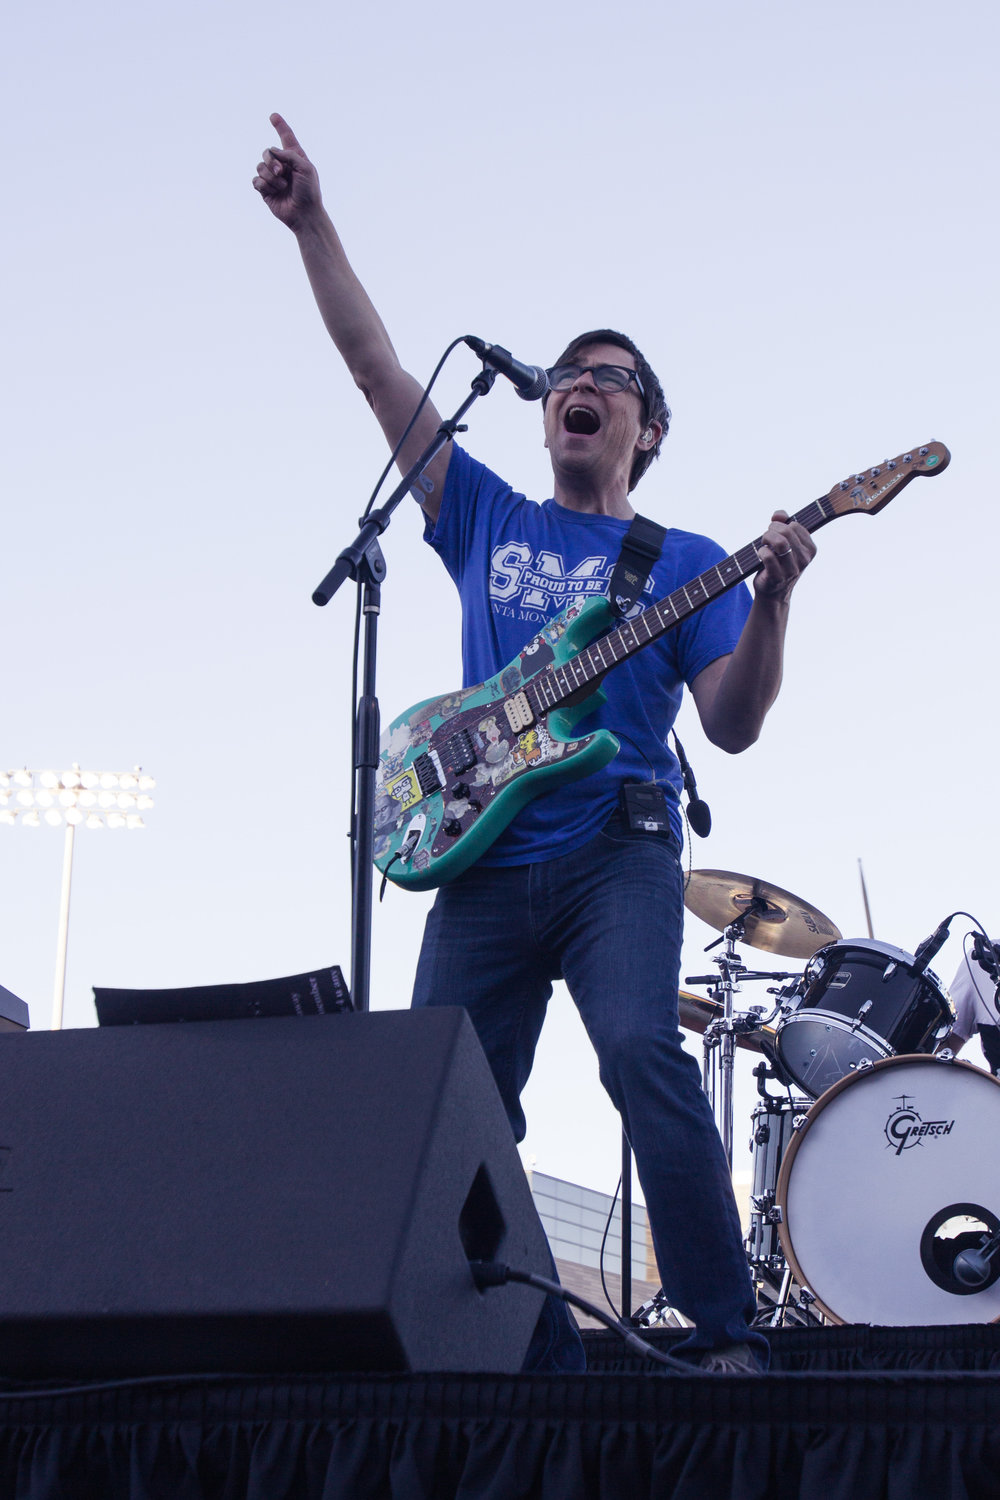 Lead singer of the band Weezer, Rivers Cuomo singing the chorus part of Africa by Toto that he did a cover of during the Halftime show of the Santa Monica Corsair's Homecoming game in Santa Monica, California on Saturday, October 20th. (Jacob Victorica/ Corsair Photo)